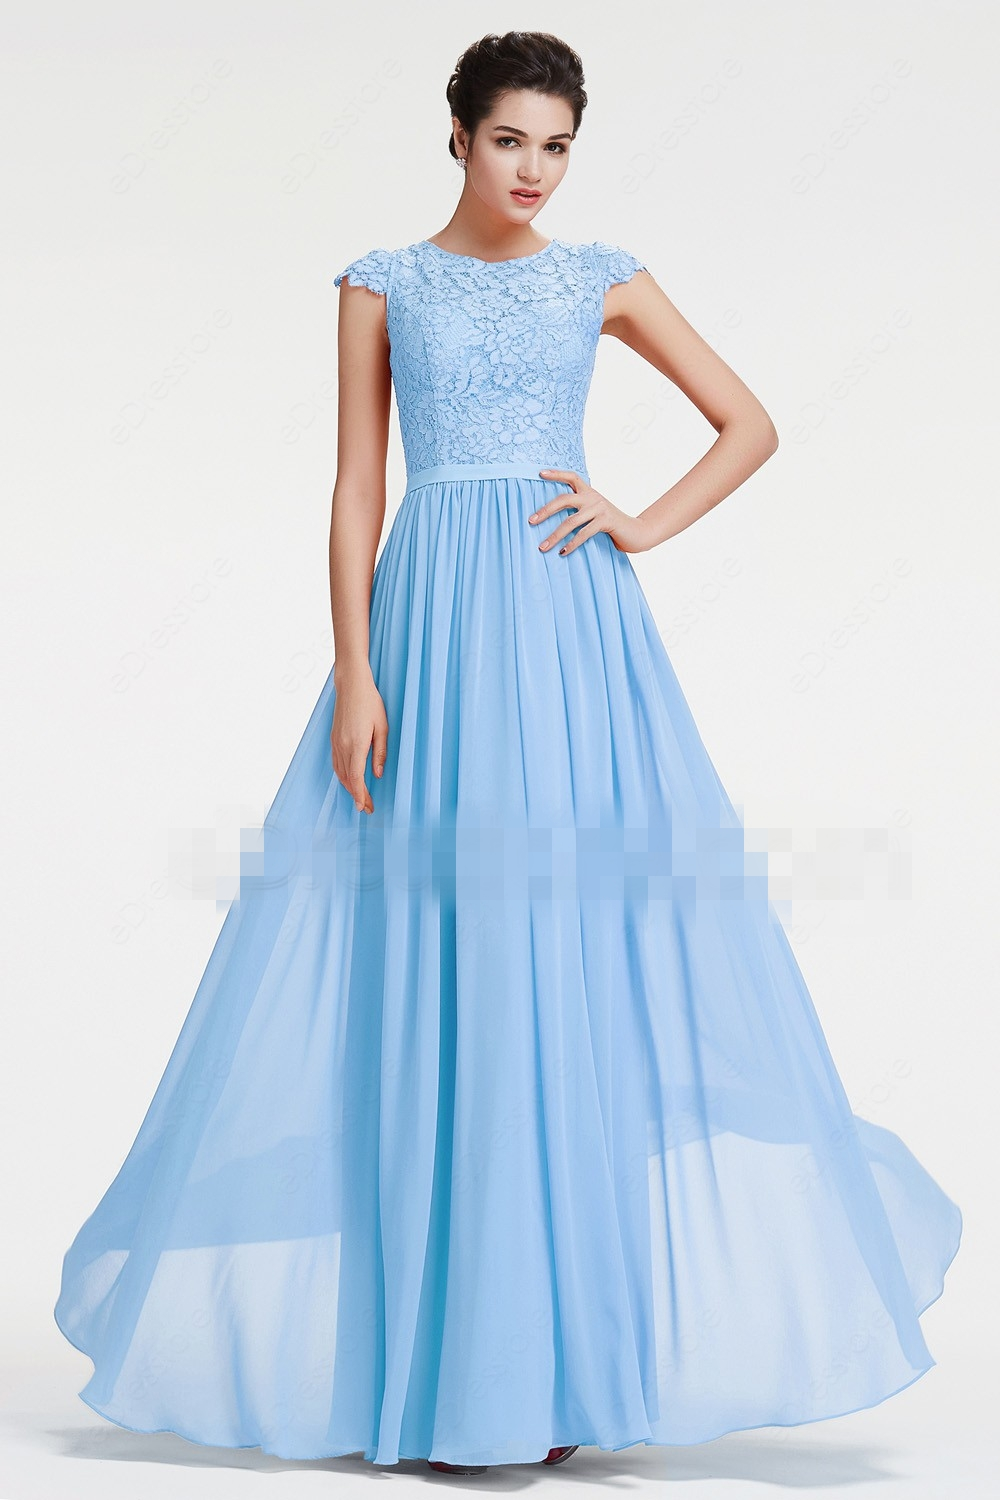 Blue Beach Long Modest   Bridesmaid     Dresses   With Cap Sleeves Lace Chiffon A-line Country Formal Wedding Party Gowns Custom Made